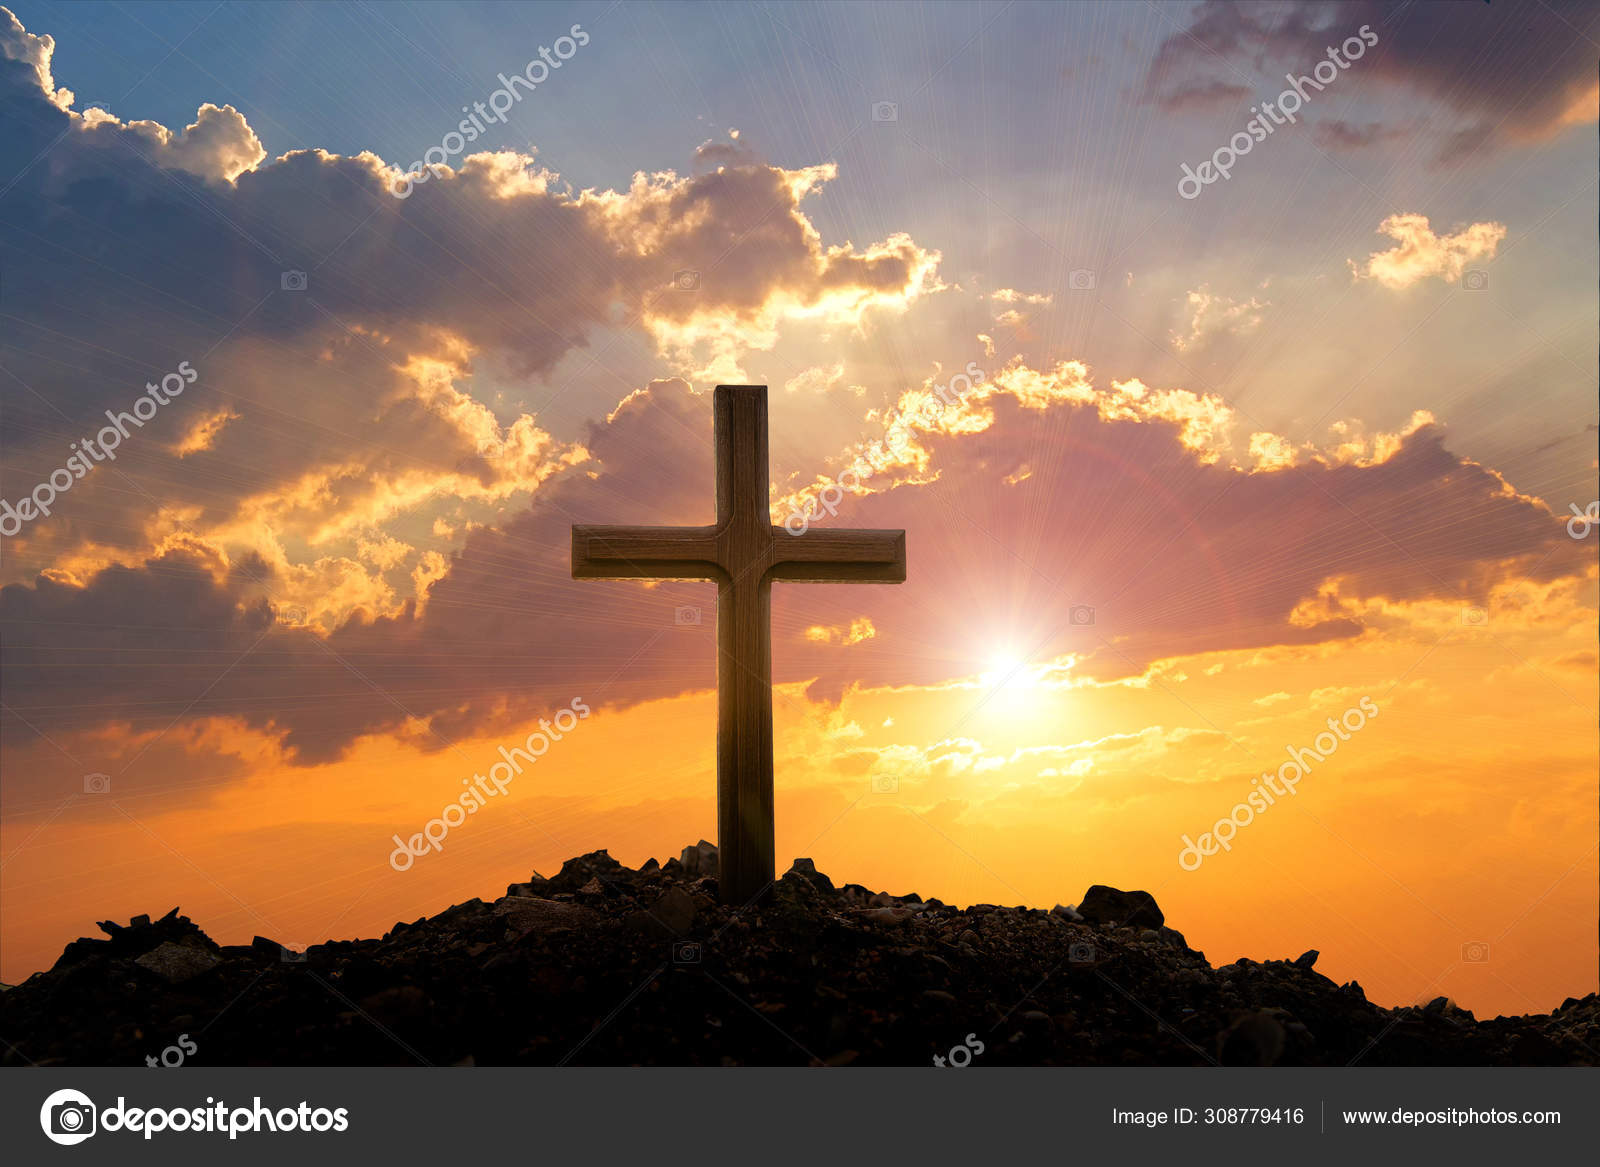 cross mountain sunset background easter concept concept conceptual black cross stock photo c kckate16 gmail com 308779416 cross mountain sunset background easter concept concept conceptual black cross stock photo c kckate16 gmail com 308779416